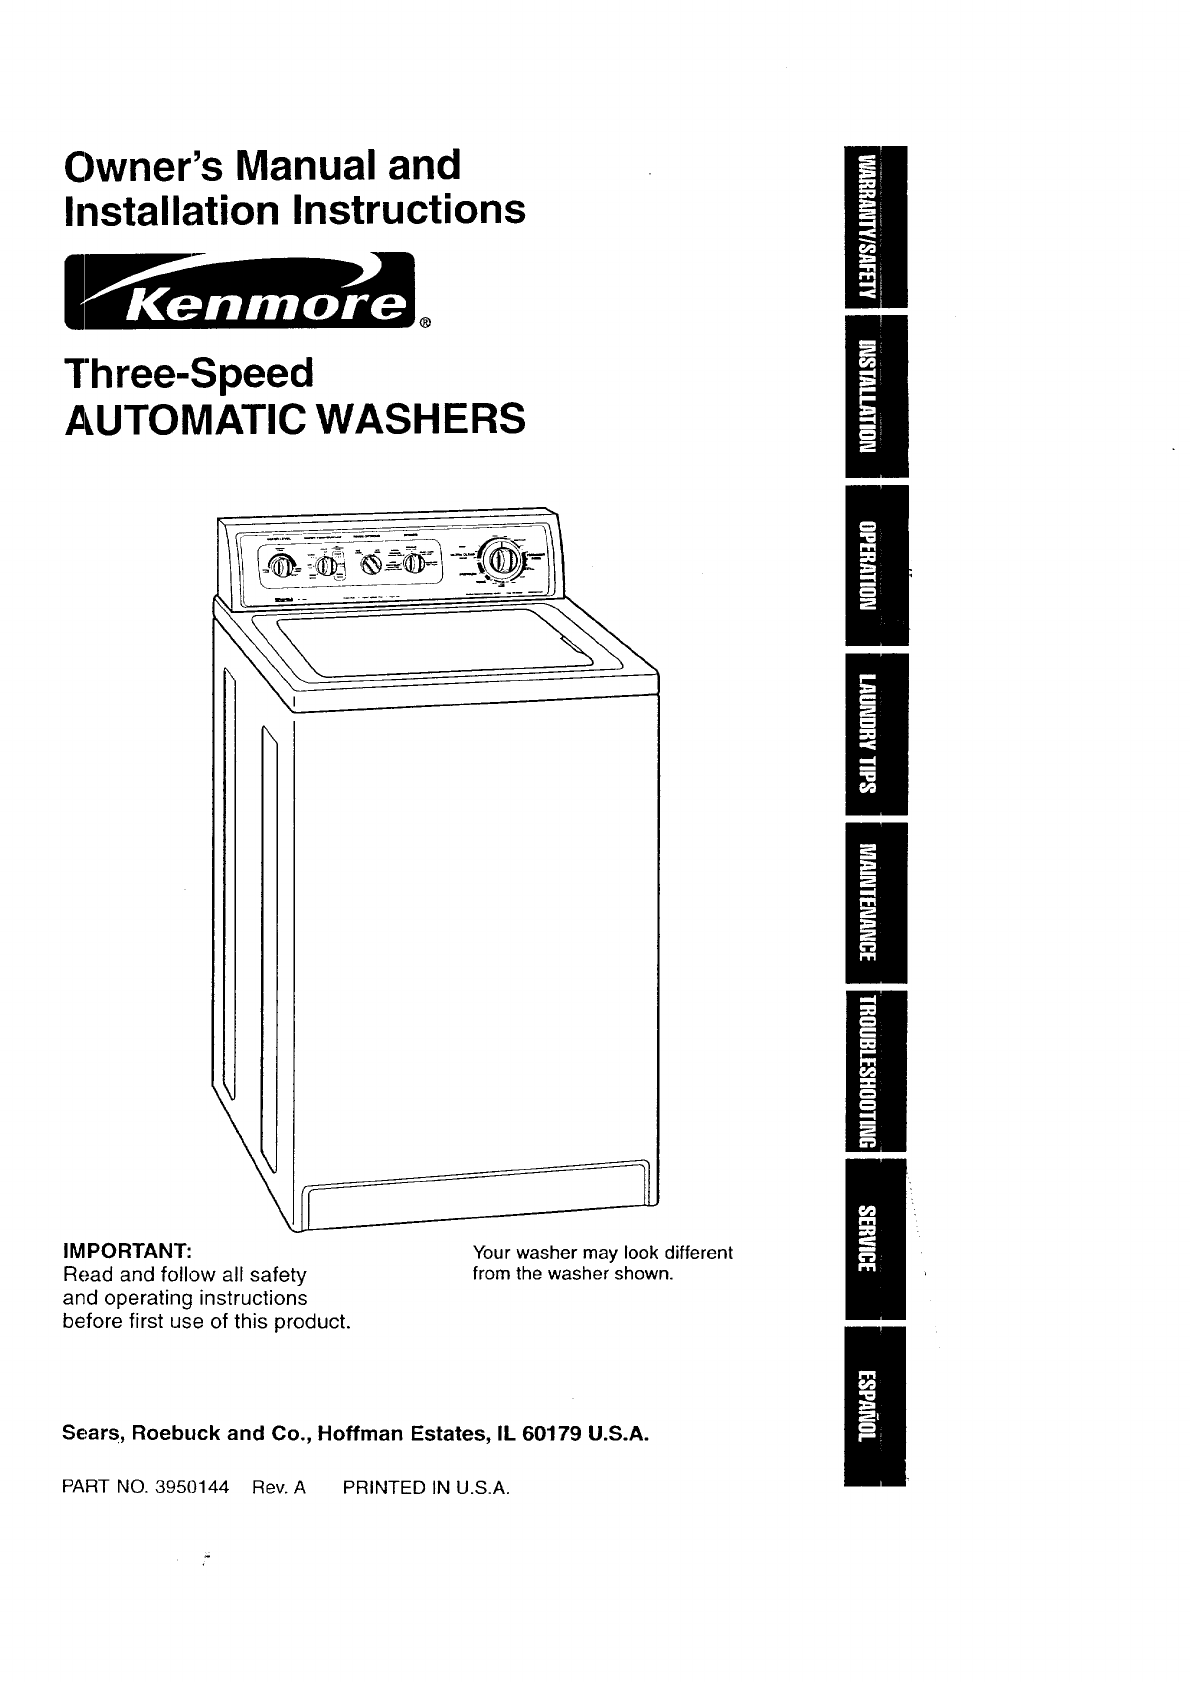 kenmore washer automatic washers user guide manualsonline com rh kitchen manualsonline com Kenmore 80 Series Parts Diagram kenmore 80 series washer troubleshooting guide